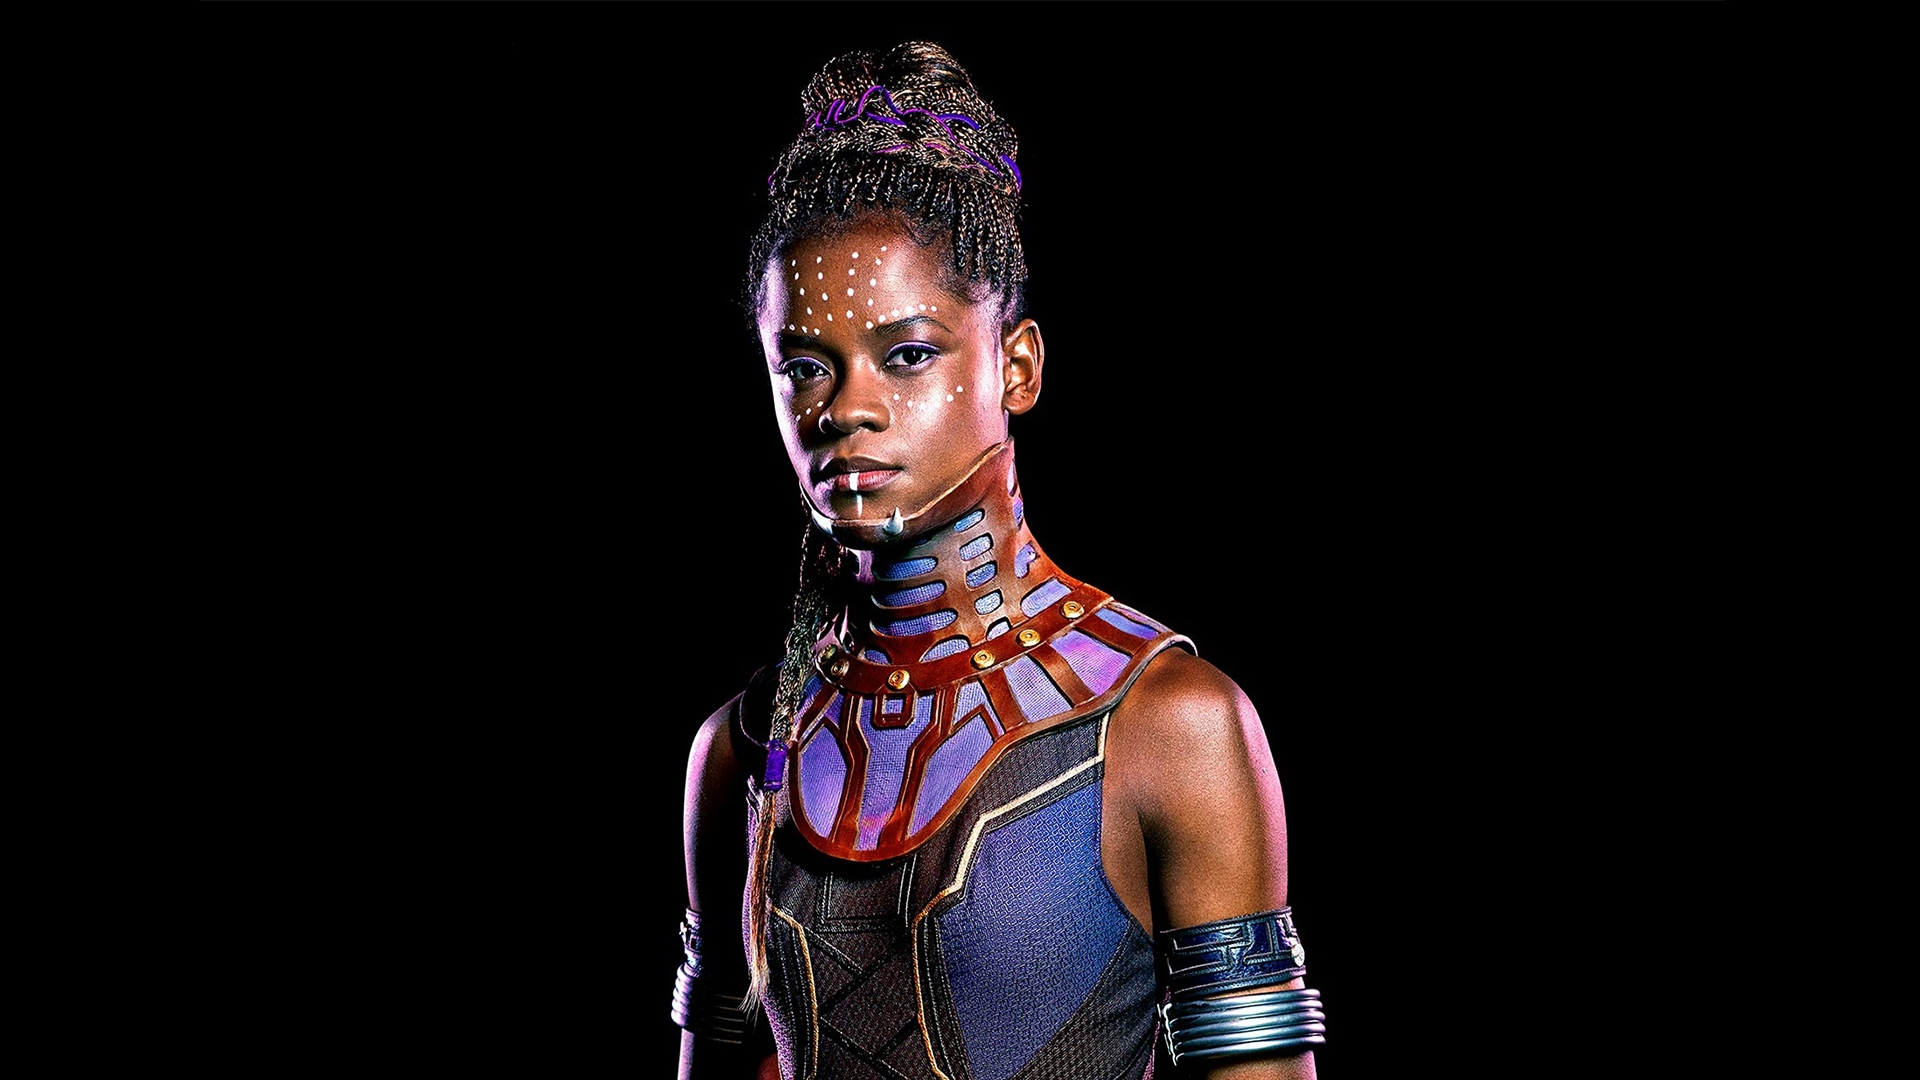 Actress Letitia Wright from Black Panther has signed up to star in the new movie about The Silent Twins.